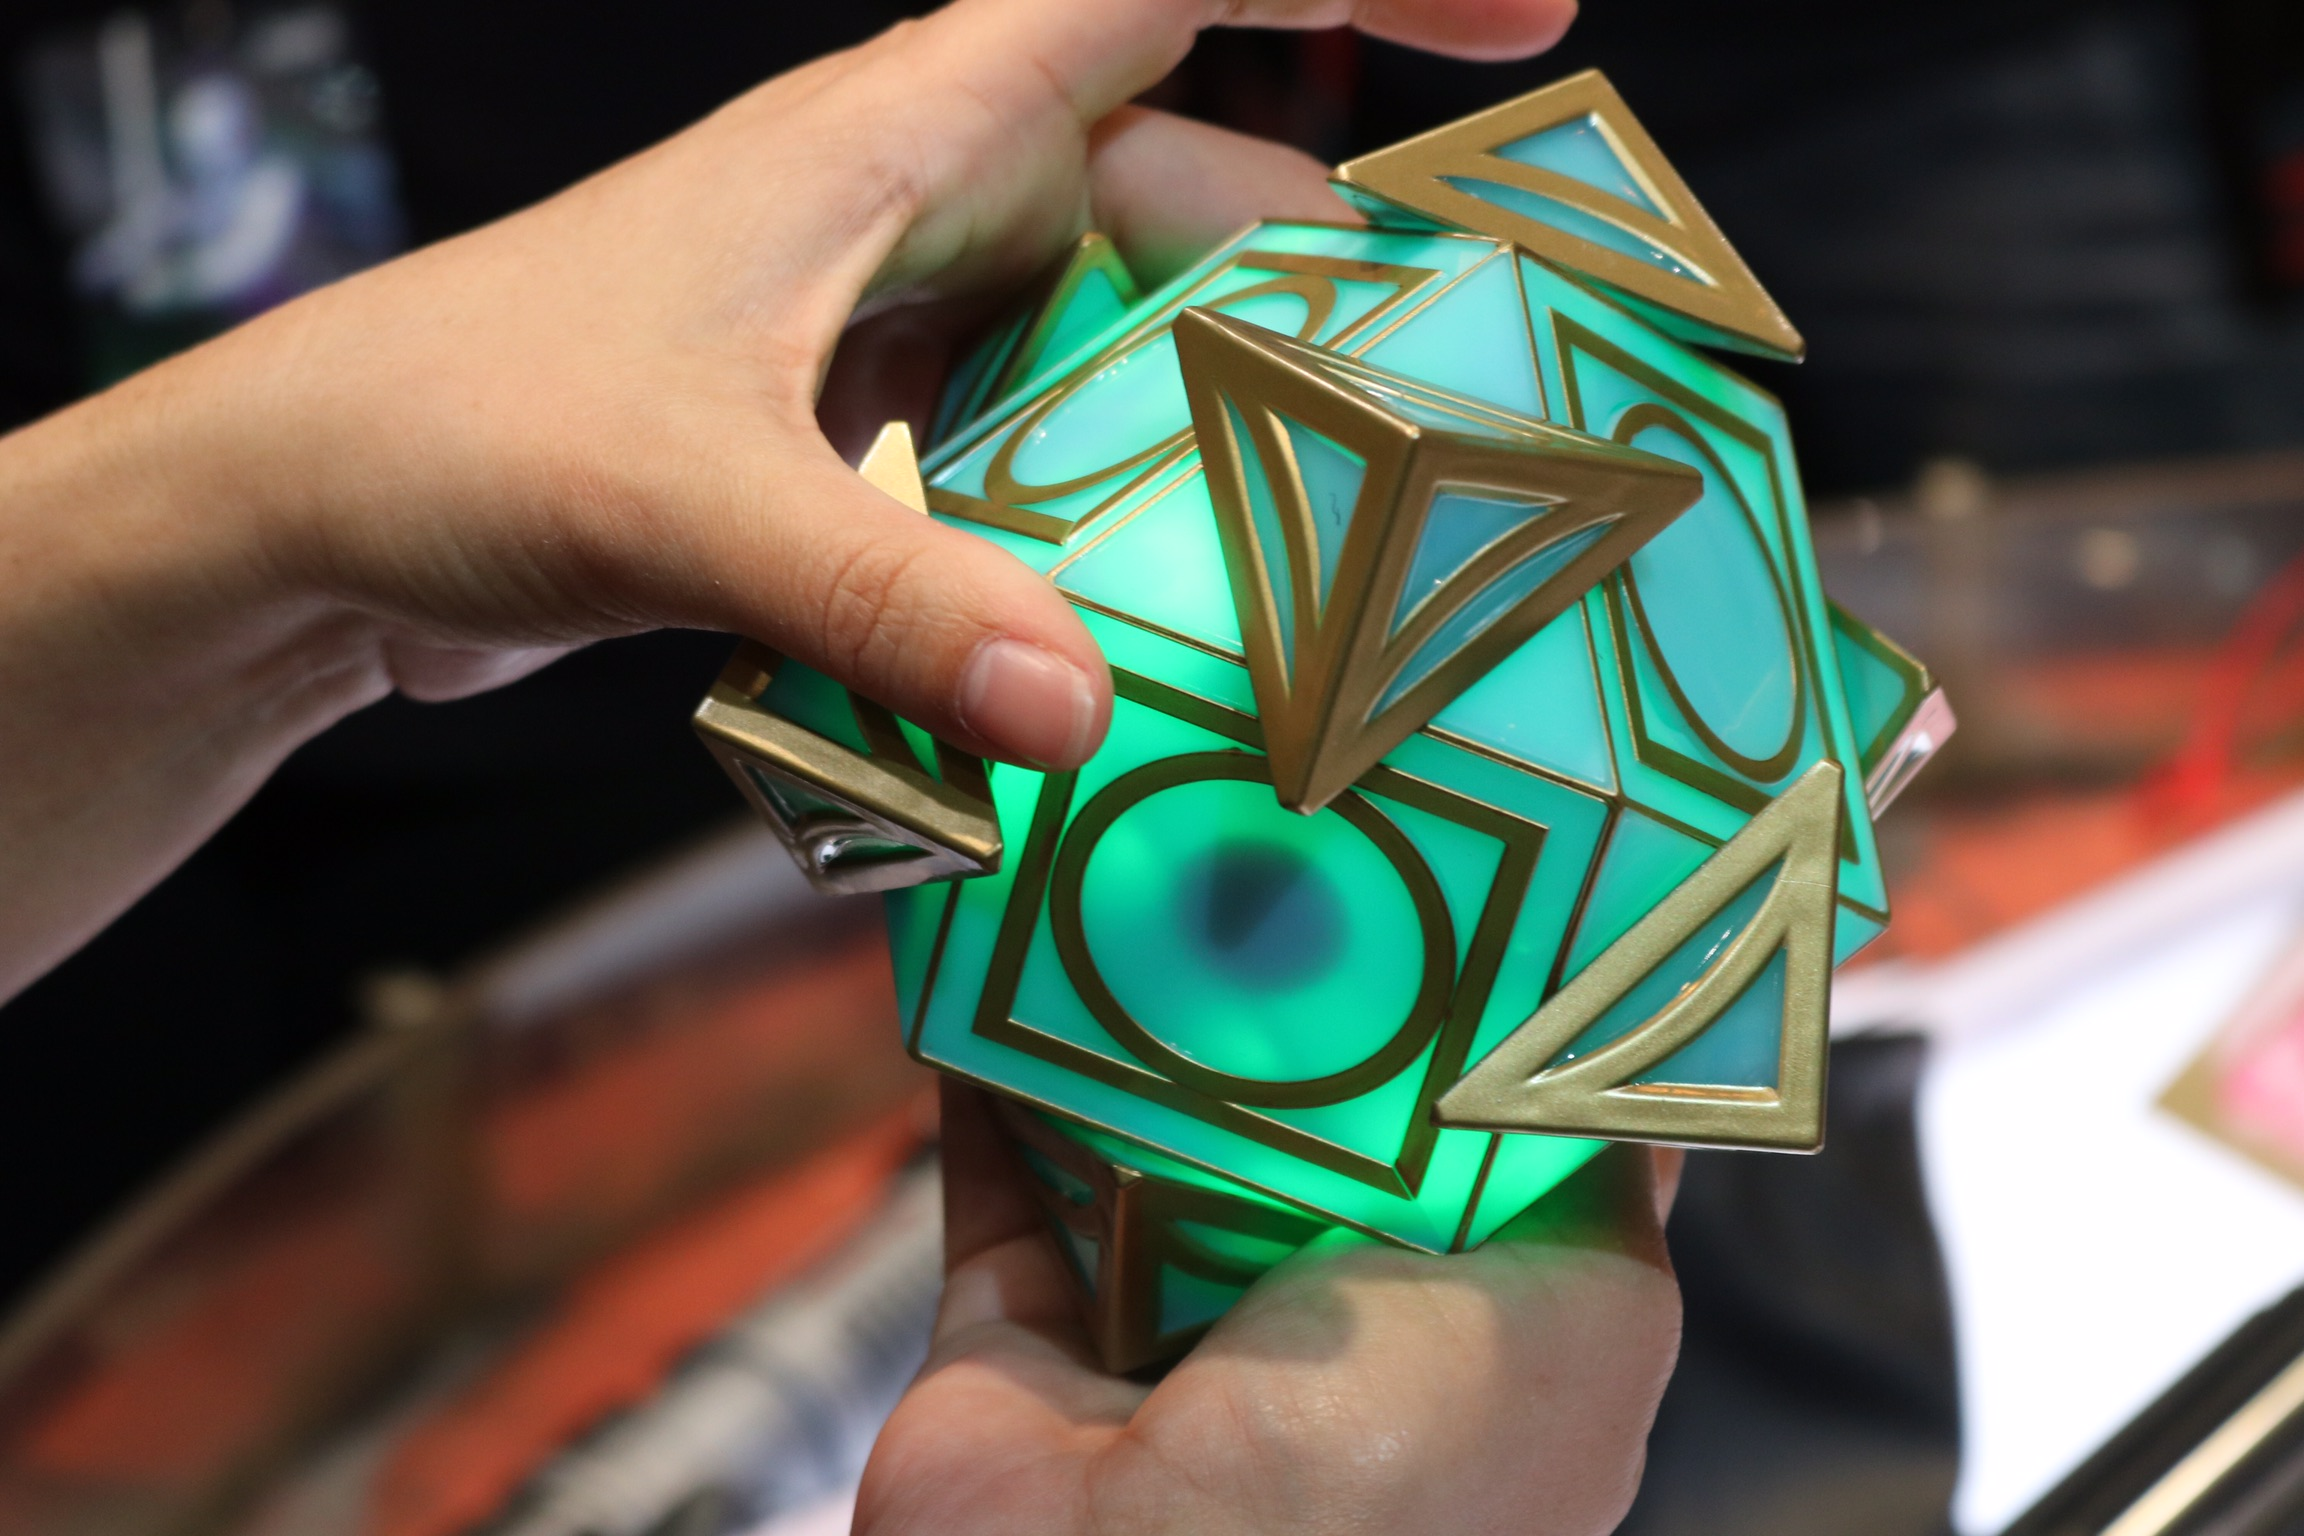 The holocron will glow based off the color of the chosen crystal, unlocking special messages, including famous Jedi such as Master Yoda.